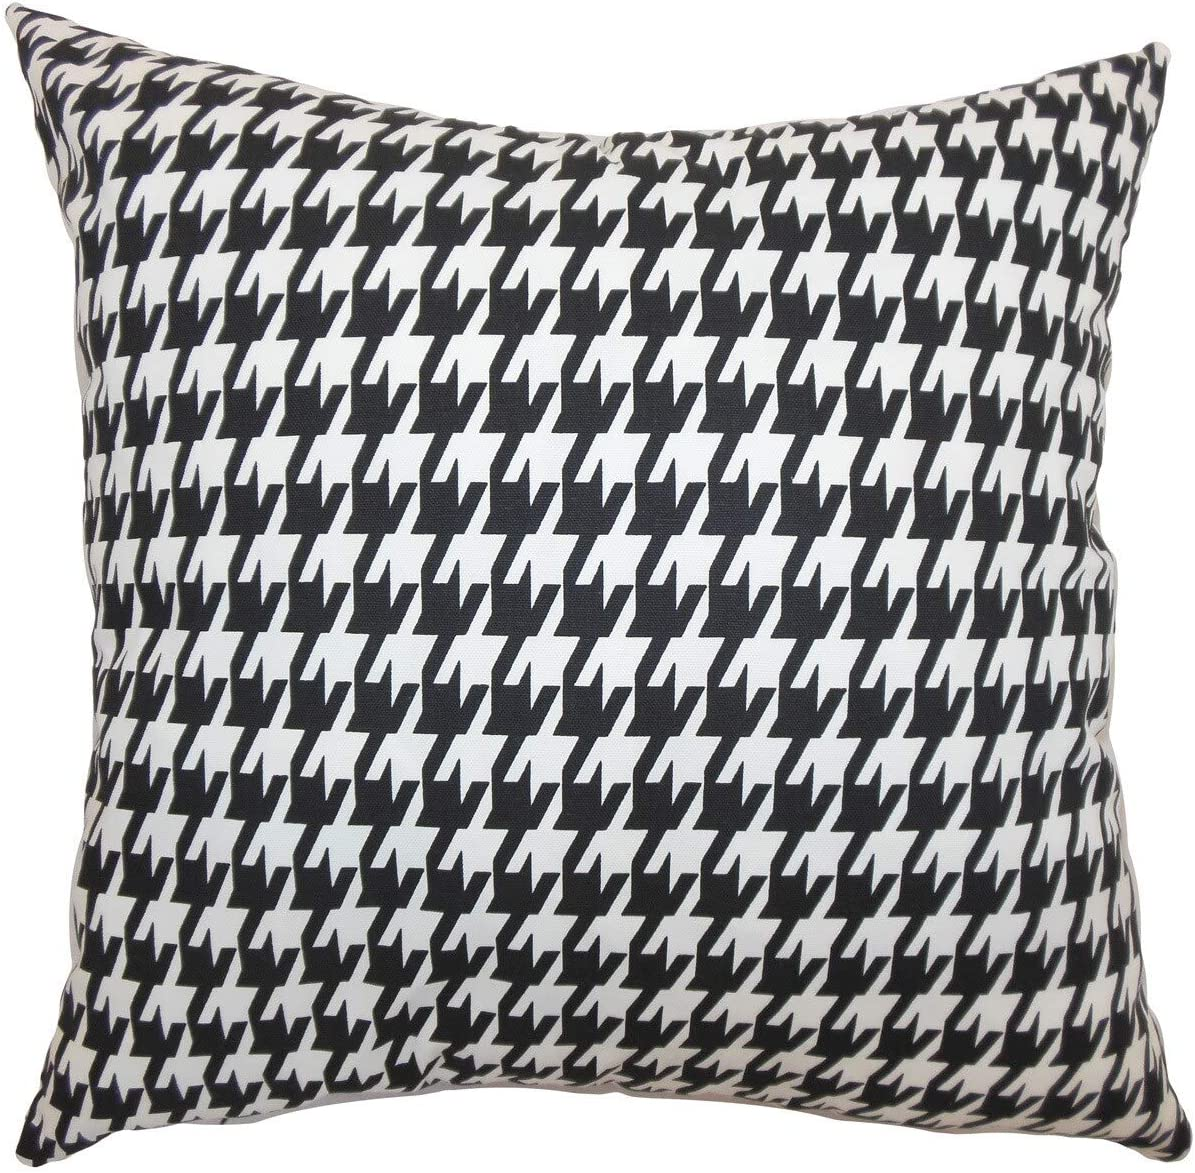 Amazon Com The Pillow Collection Ceres Houndstooth 24 Inch Down Feather Throw Pillow Black White Home Kitchen